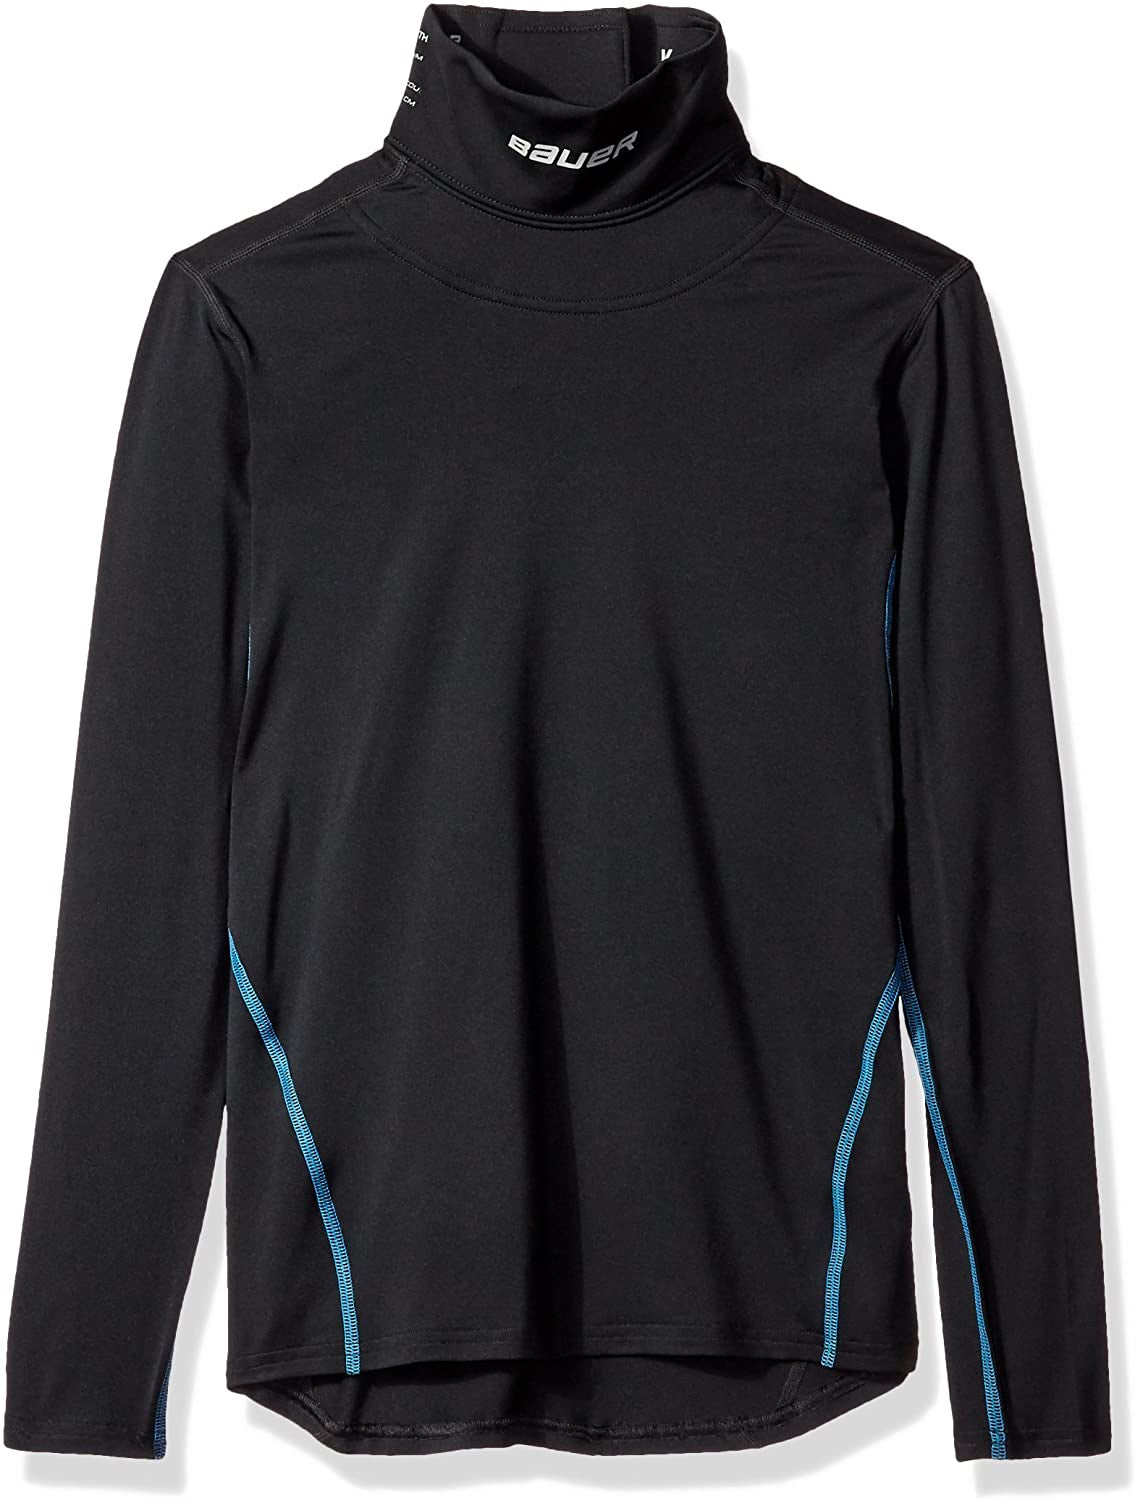 Bauer JuniorCore Integrated Neck Guard Long Sleeve Top